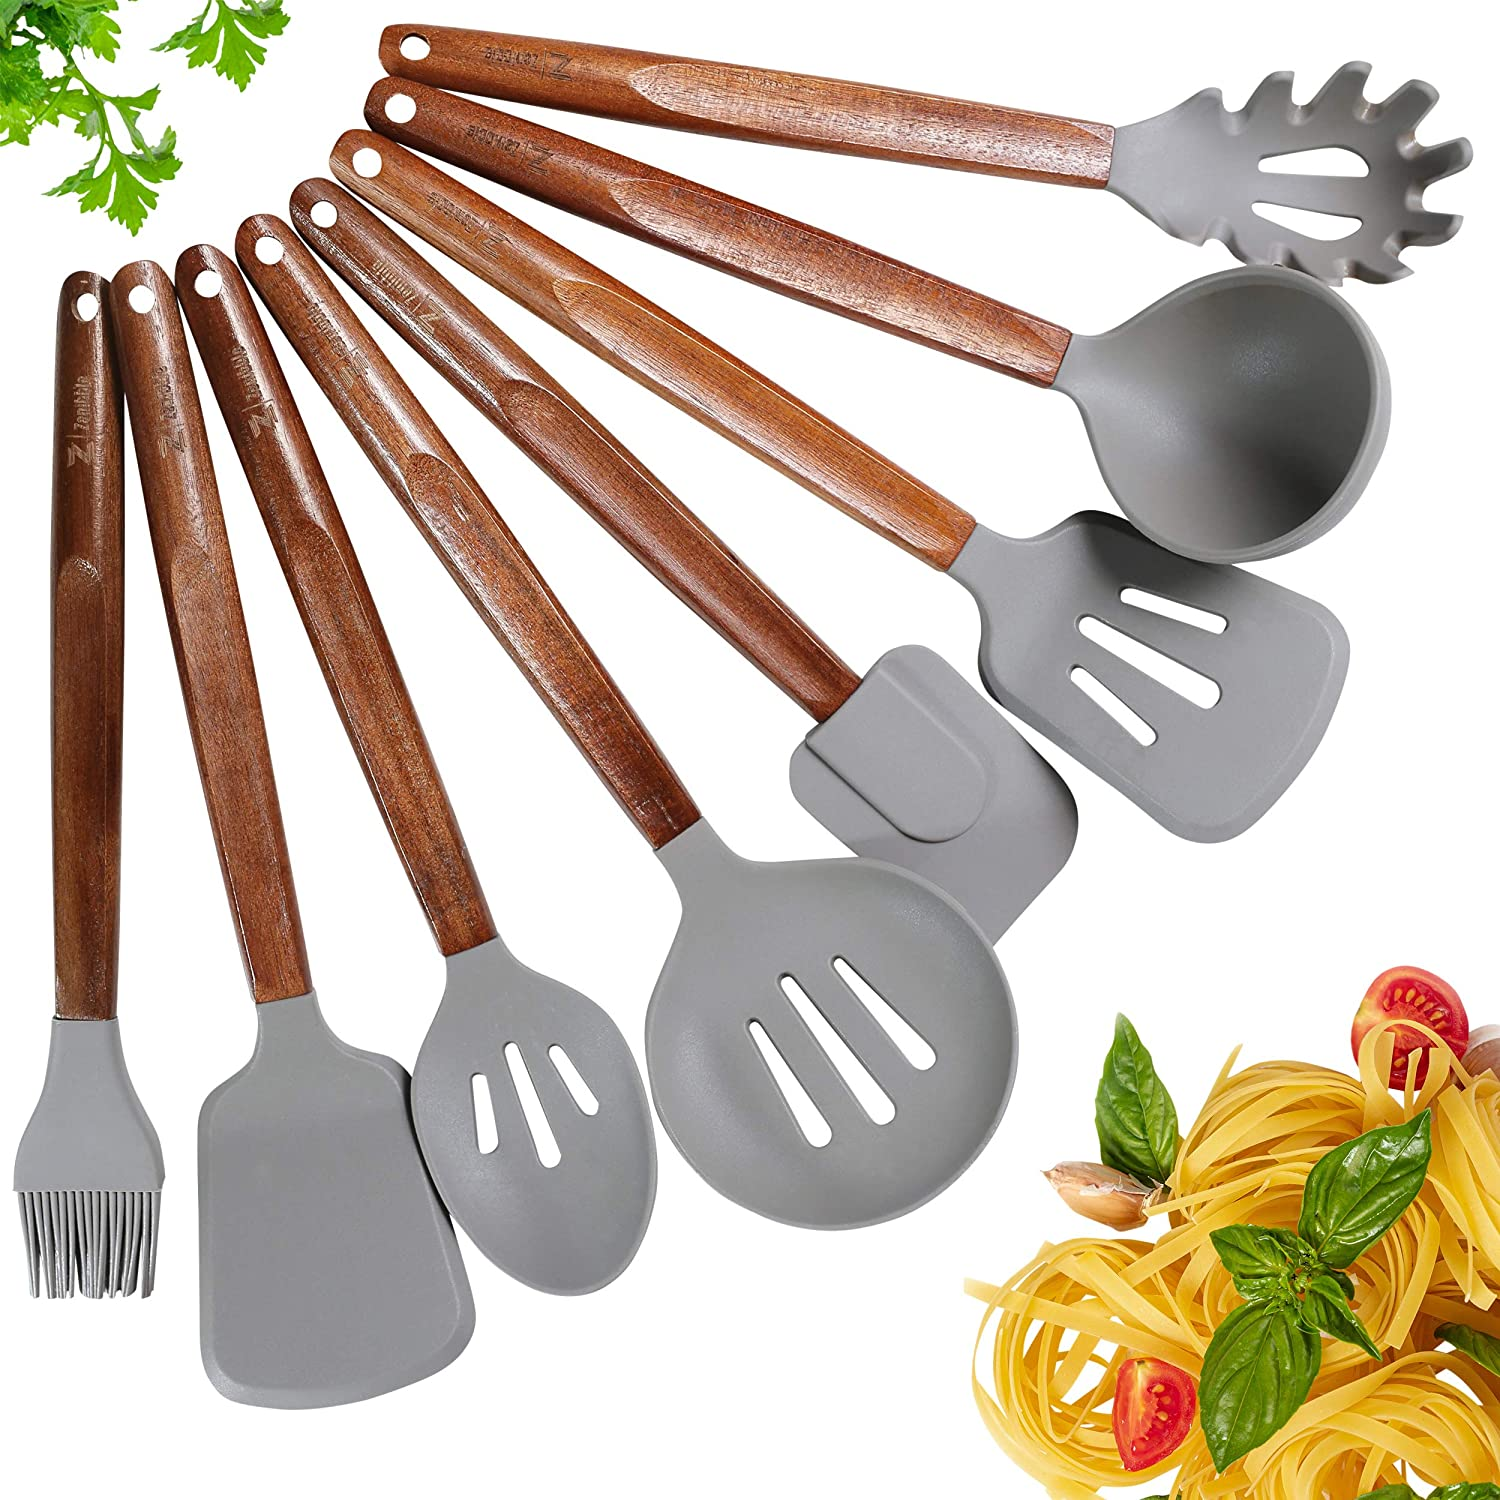 Zenibble Handmade Acacia Wood and Silicone Cooking Utensil Set of 8 - Non-stick Scratch Free BPA Free - Heat Resistant Spatulas, Turners & Serving Spoons with Natural Wooden Handles for Home Kitchen